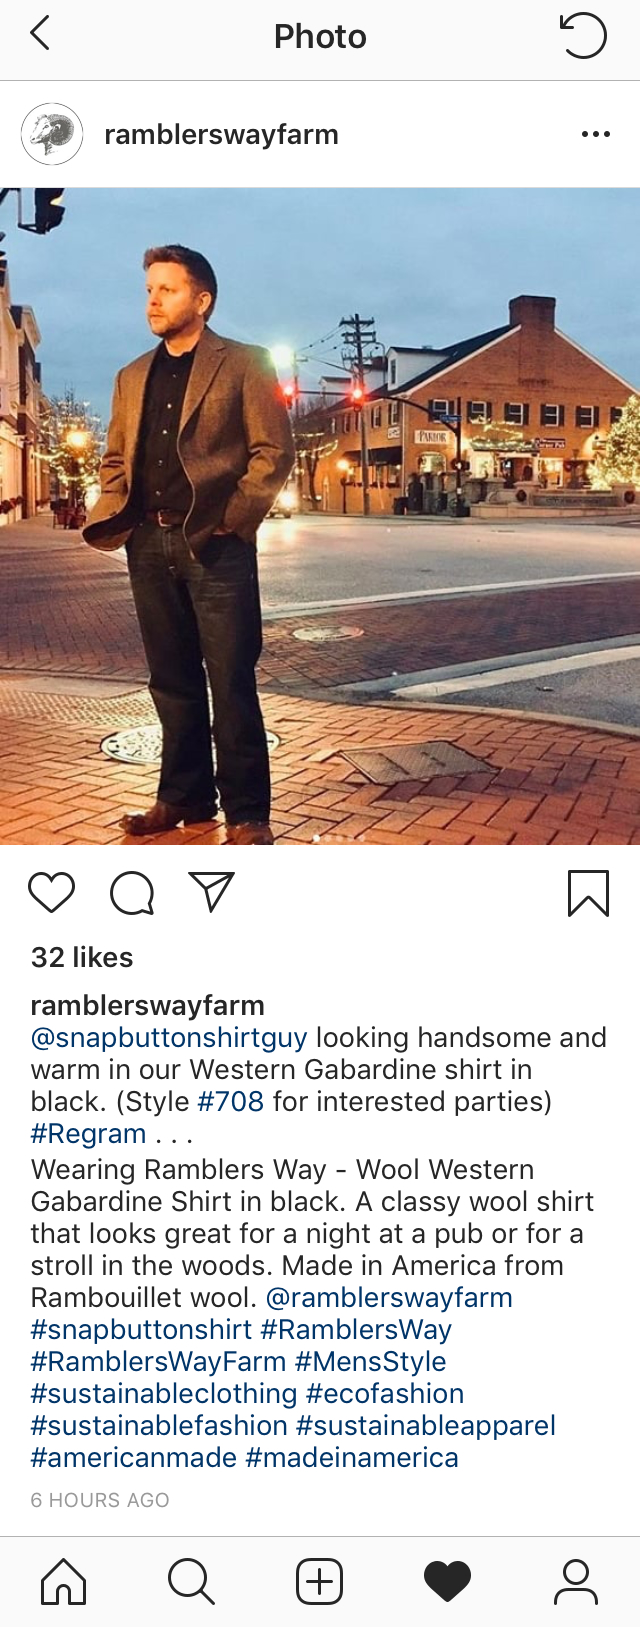 Ramblers Way Instagram post